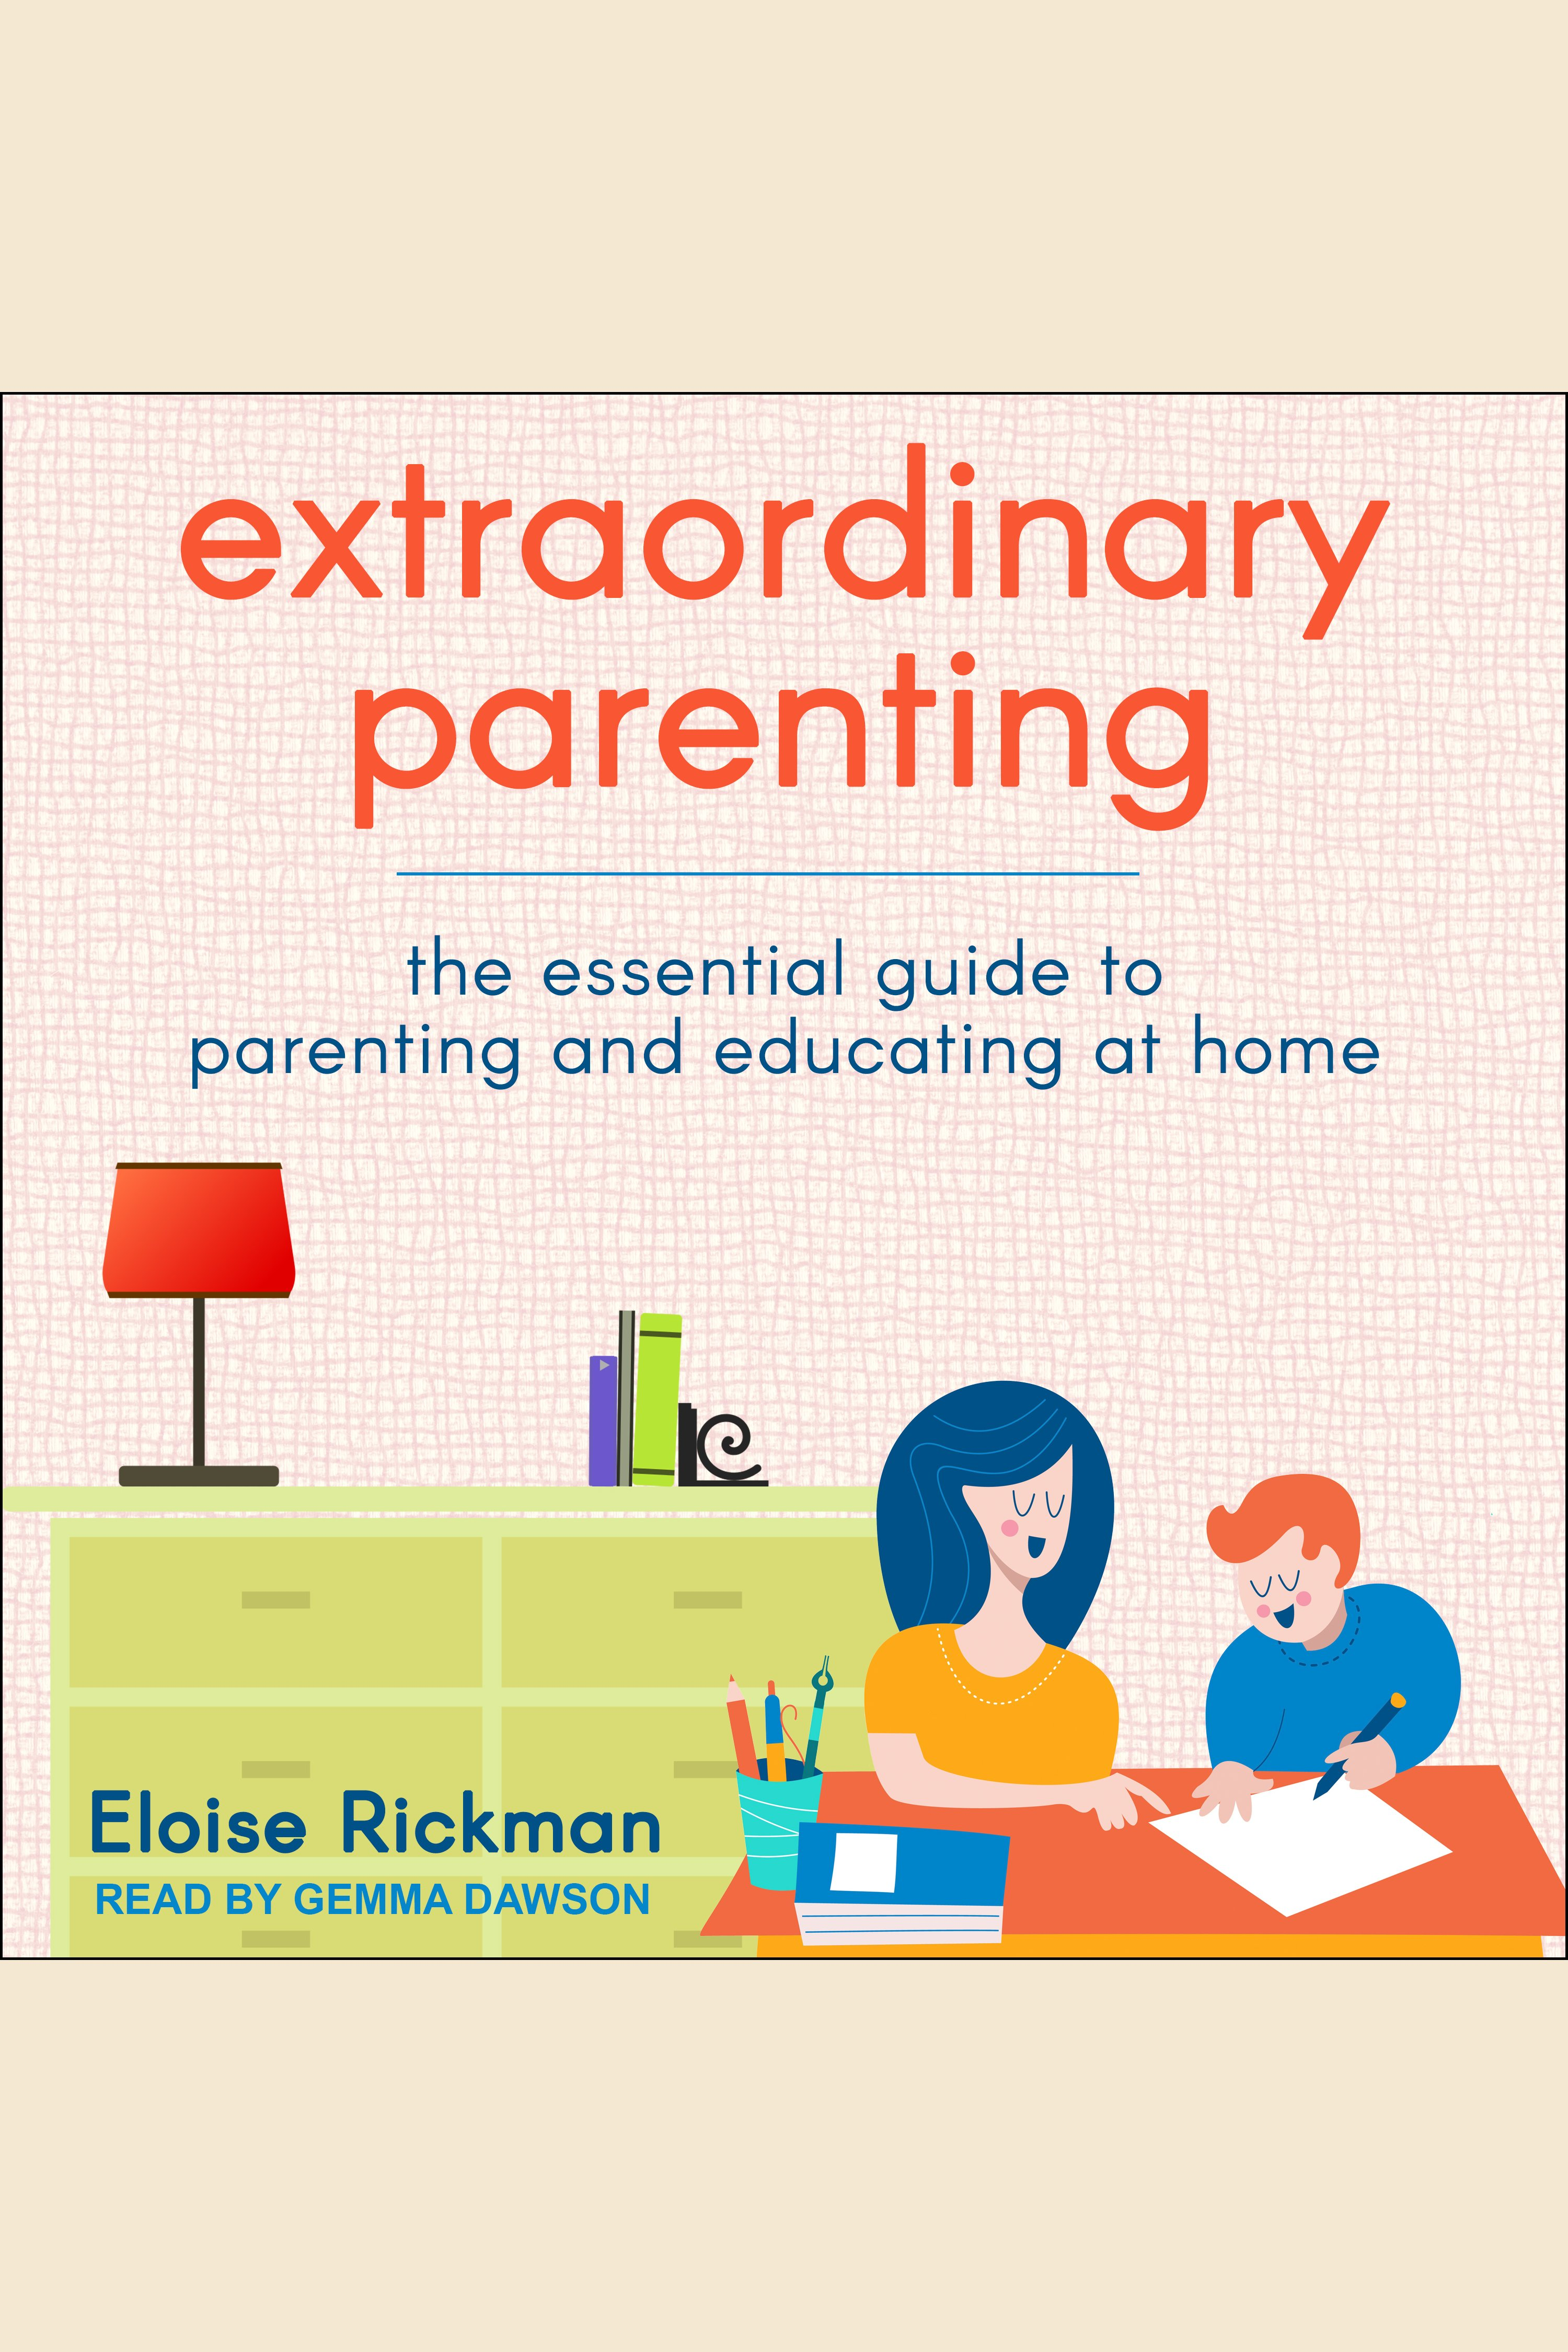 Extraordinary parenting the essential guide to parenting and educating at home cover image